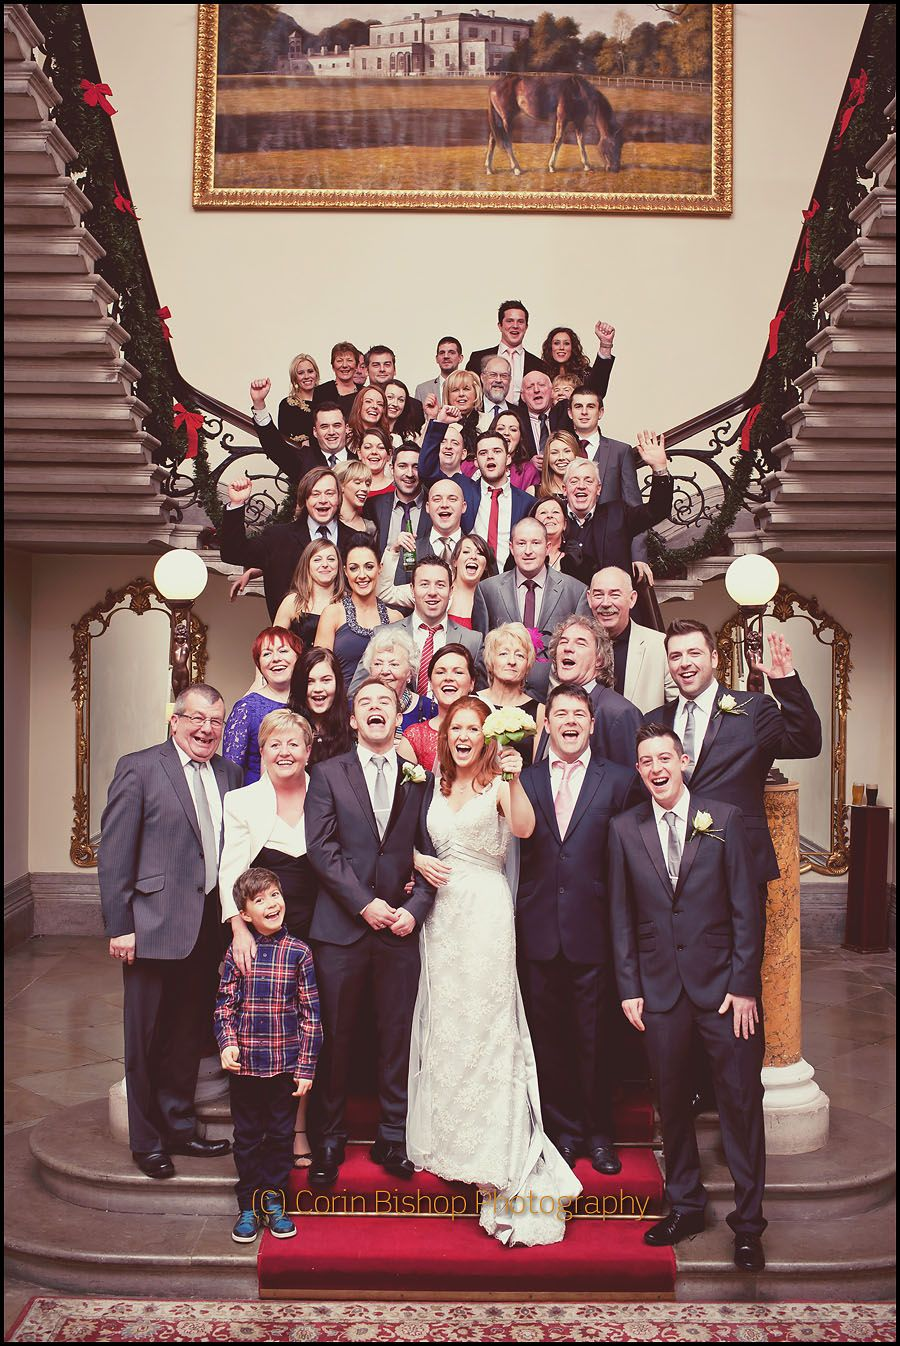 Wedding Photography Athlone: Middleton Park House Wedding Photography By Corin Bishop